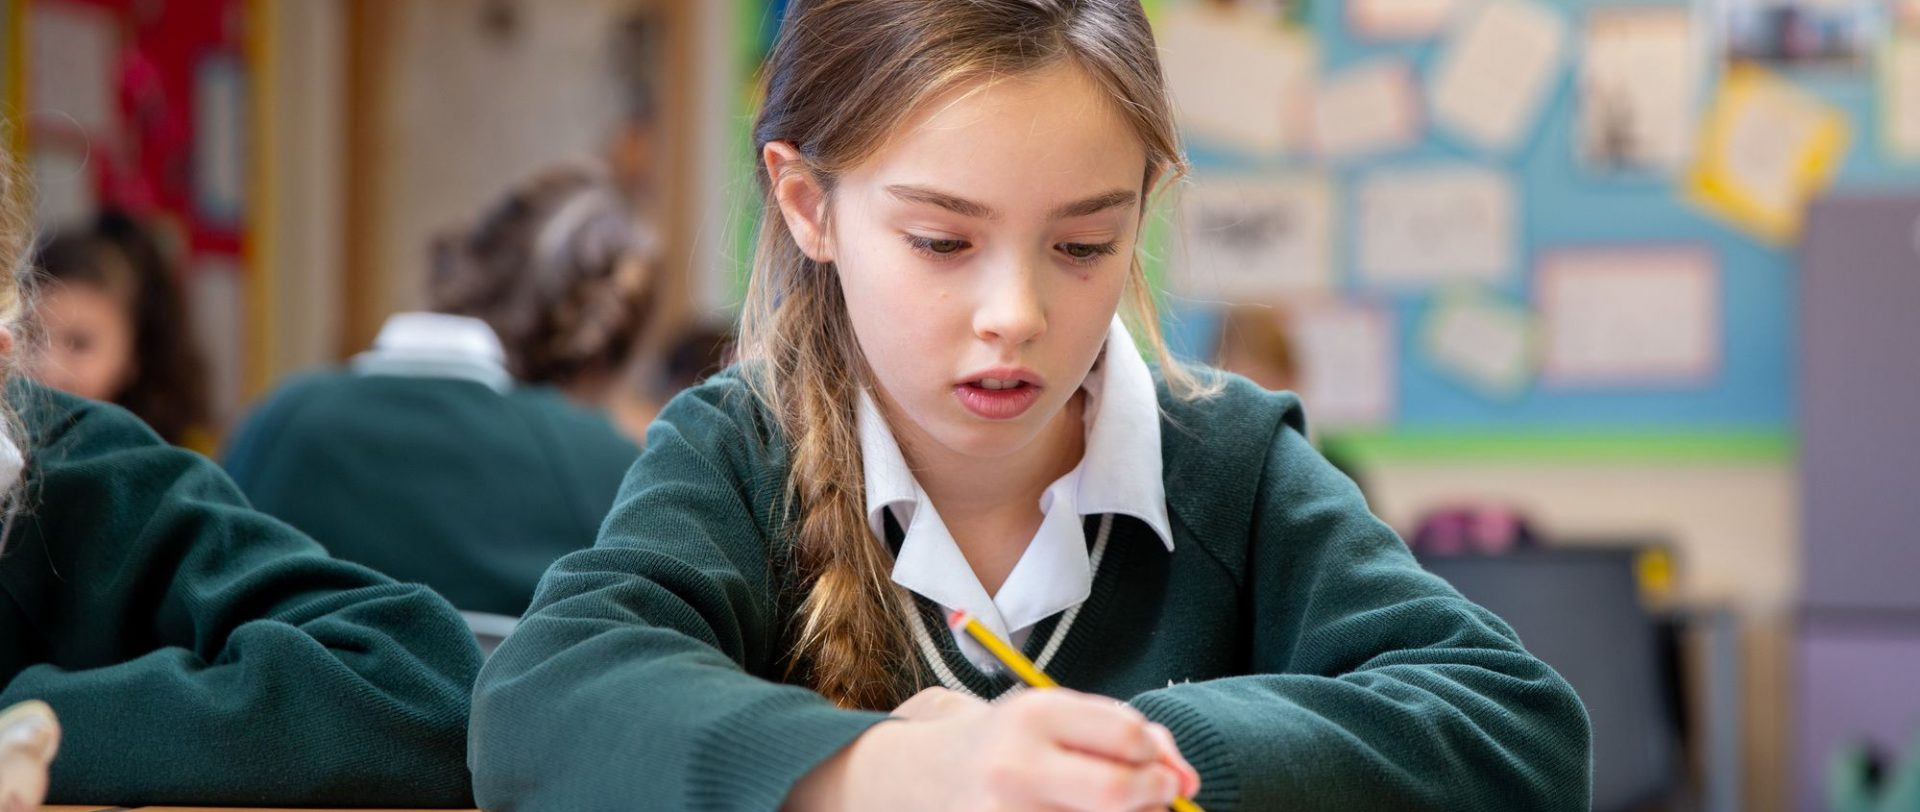 school girl writing with a pencil